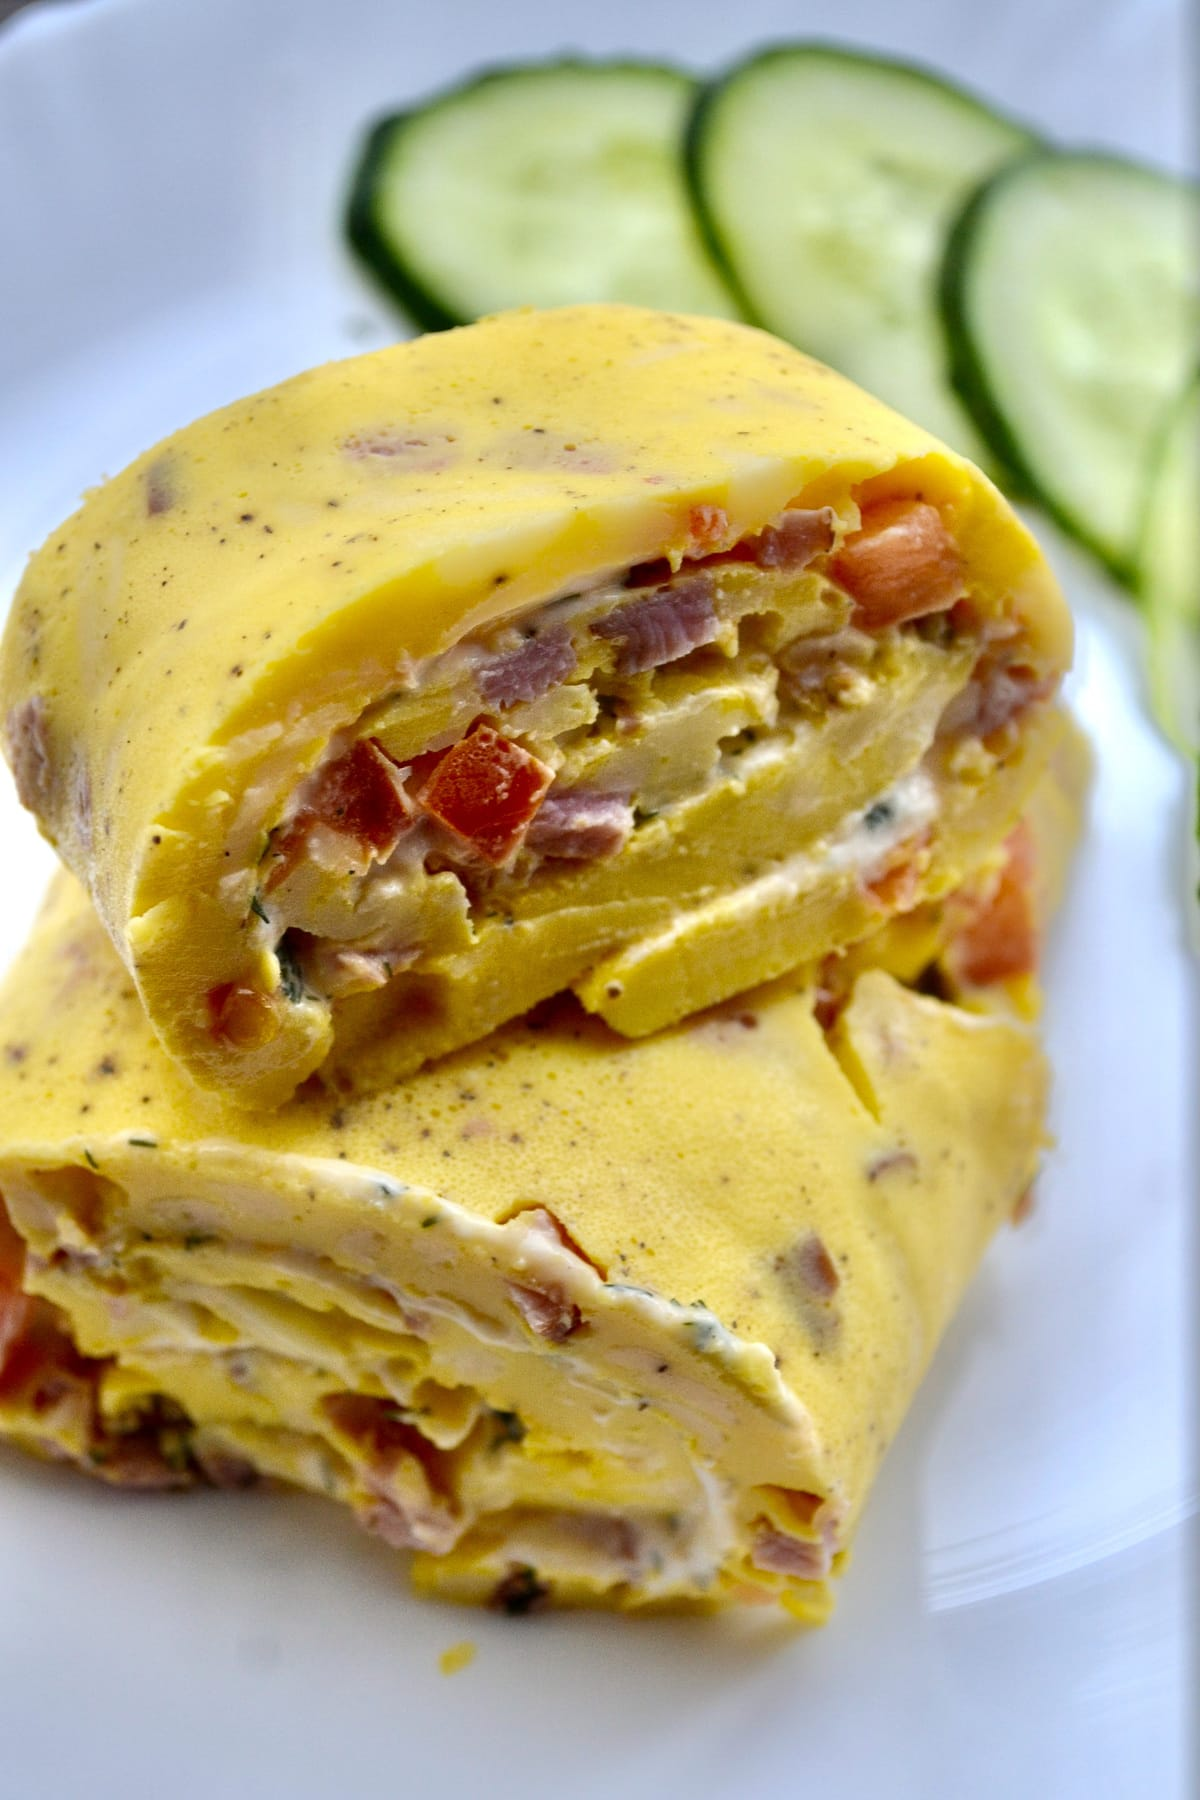 Keto baked omelet roll with cucumbers on side